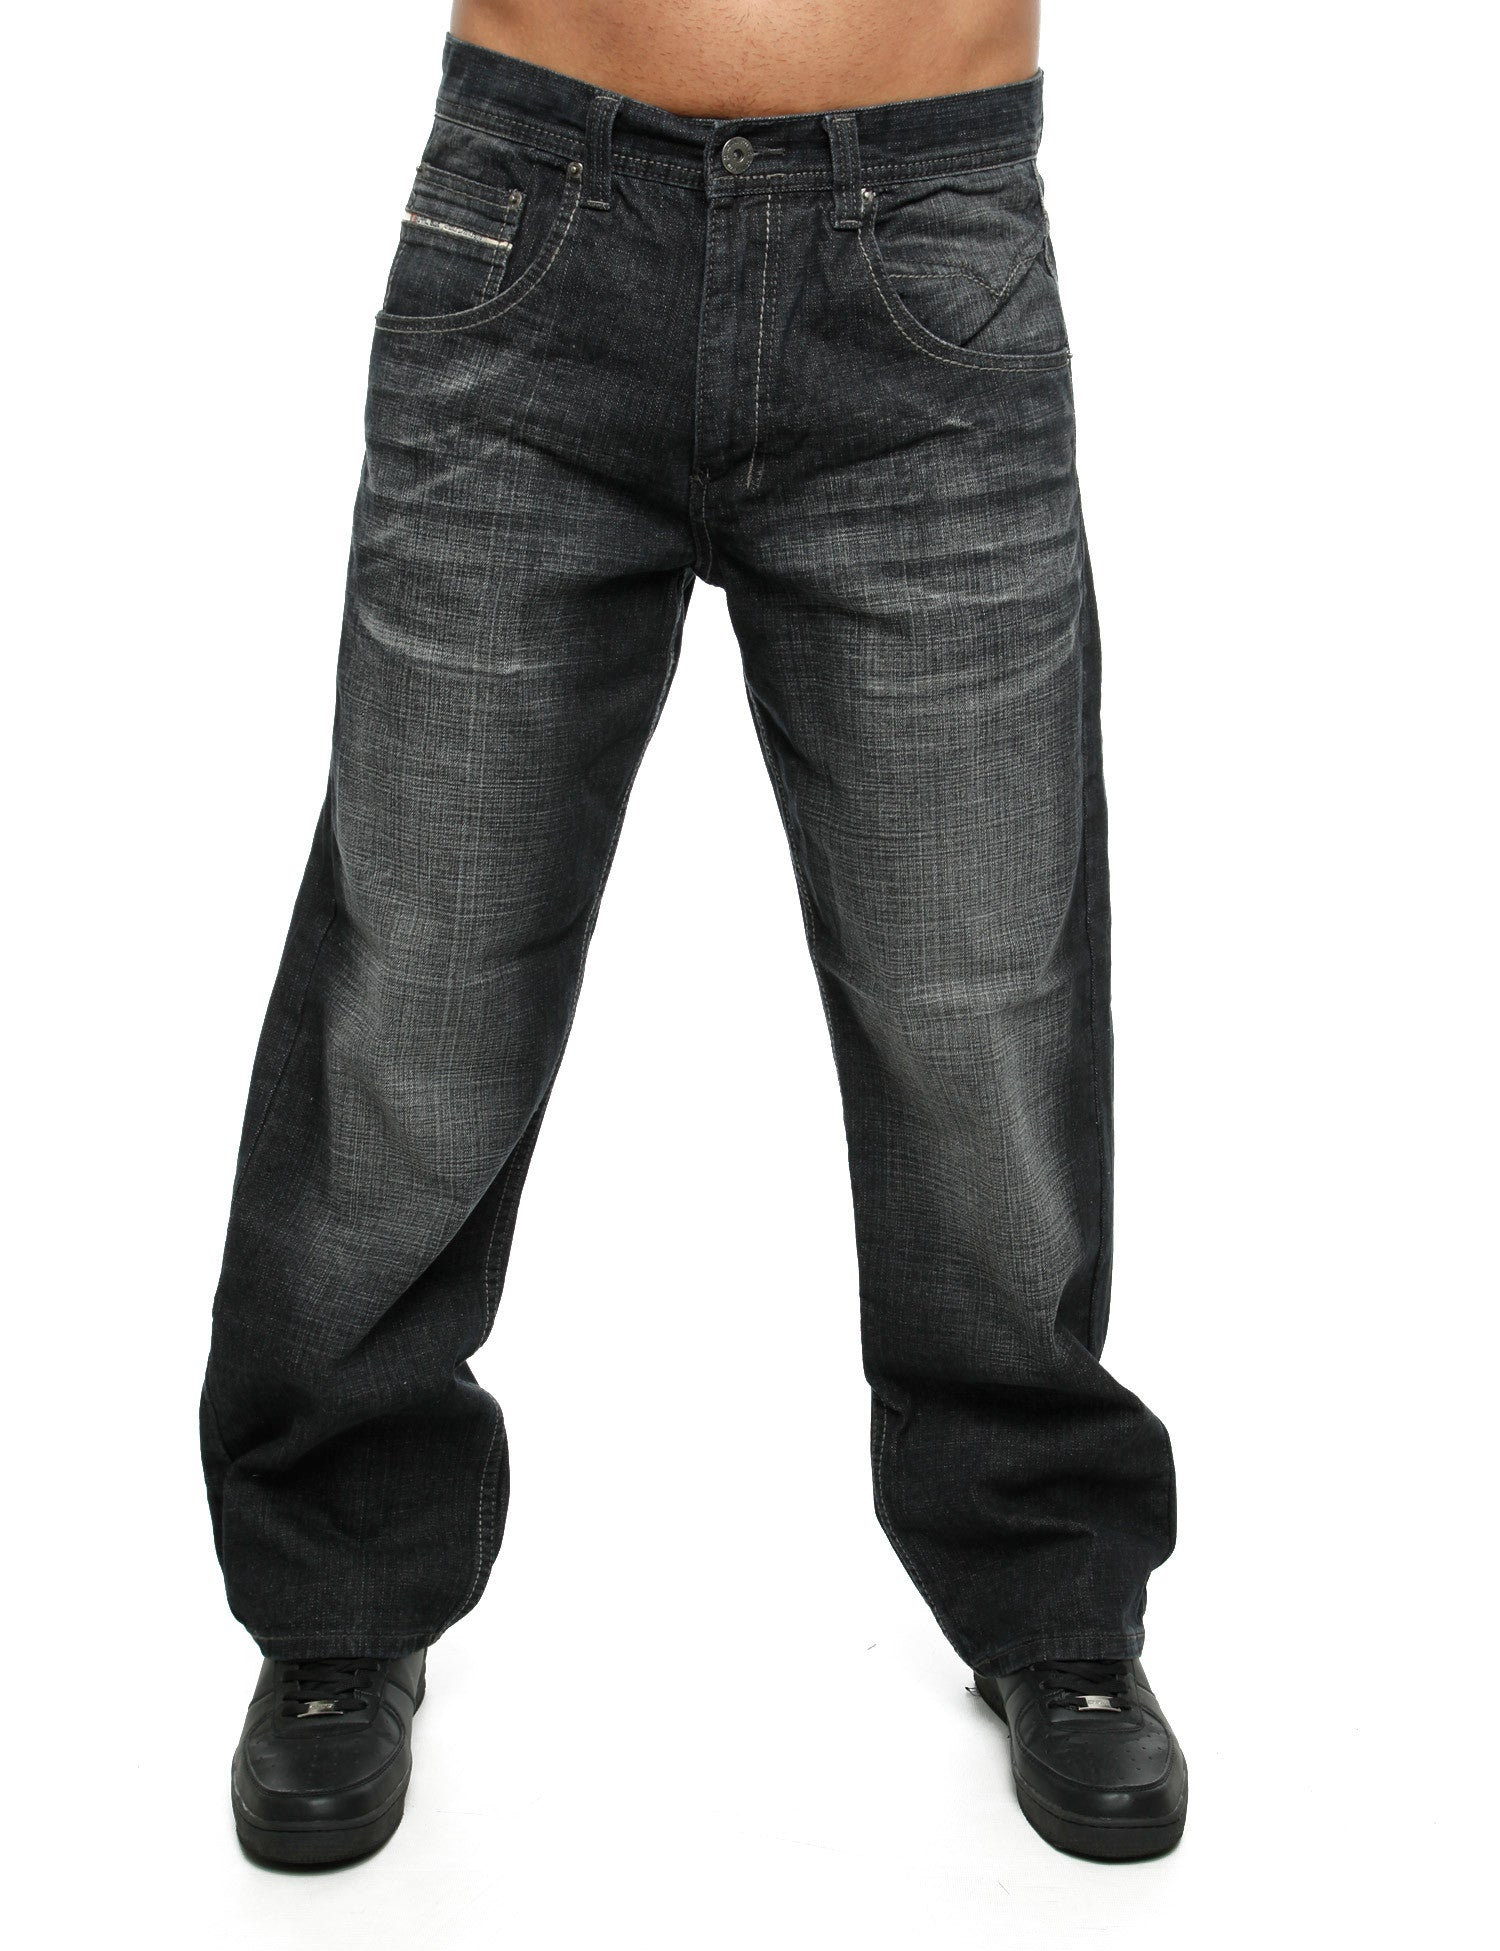 Royal Blue Jeans 8207 Black